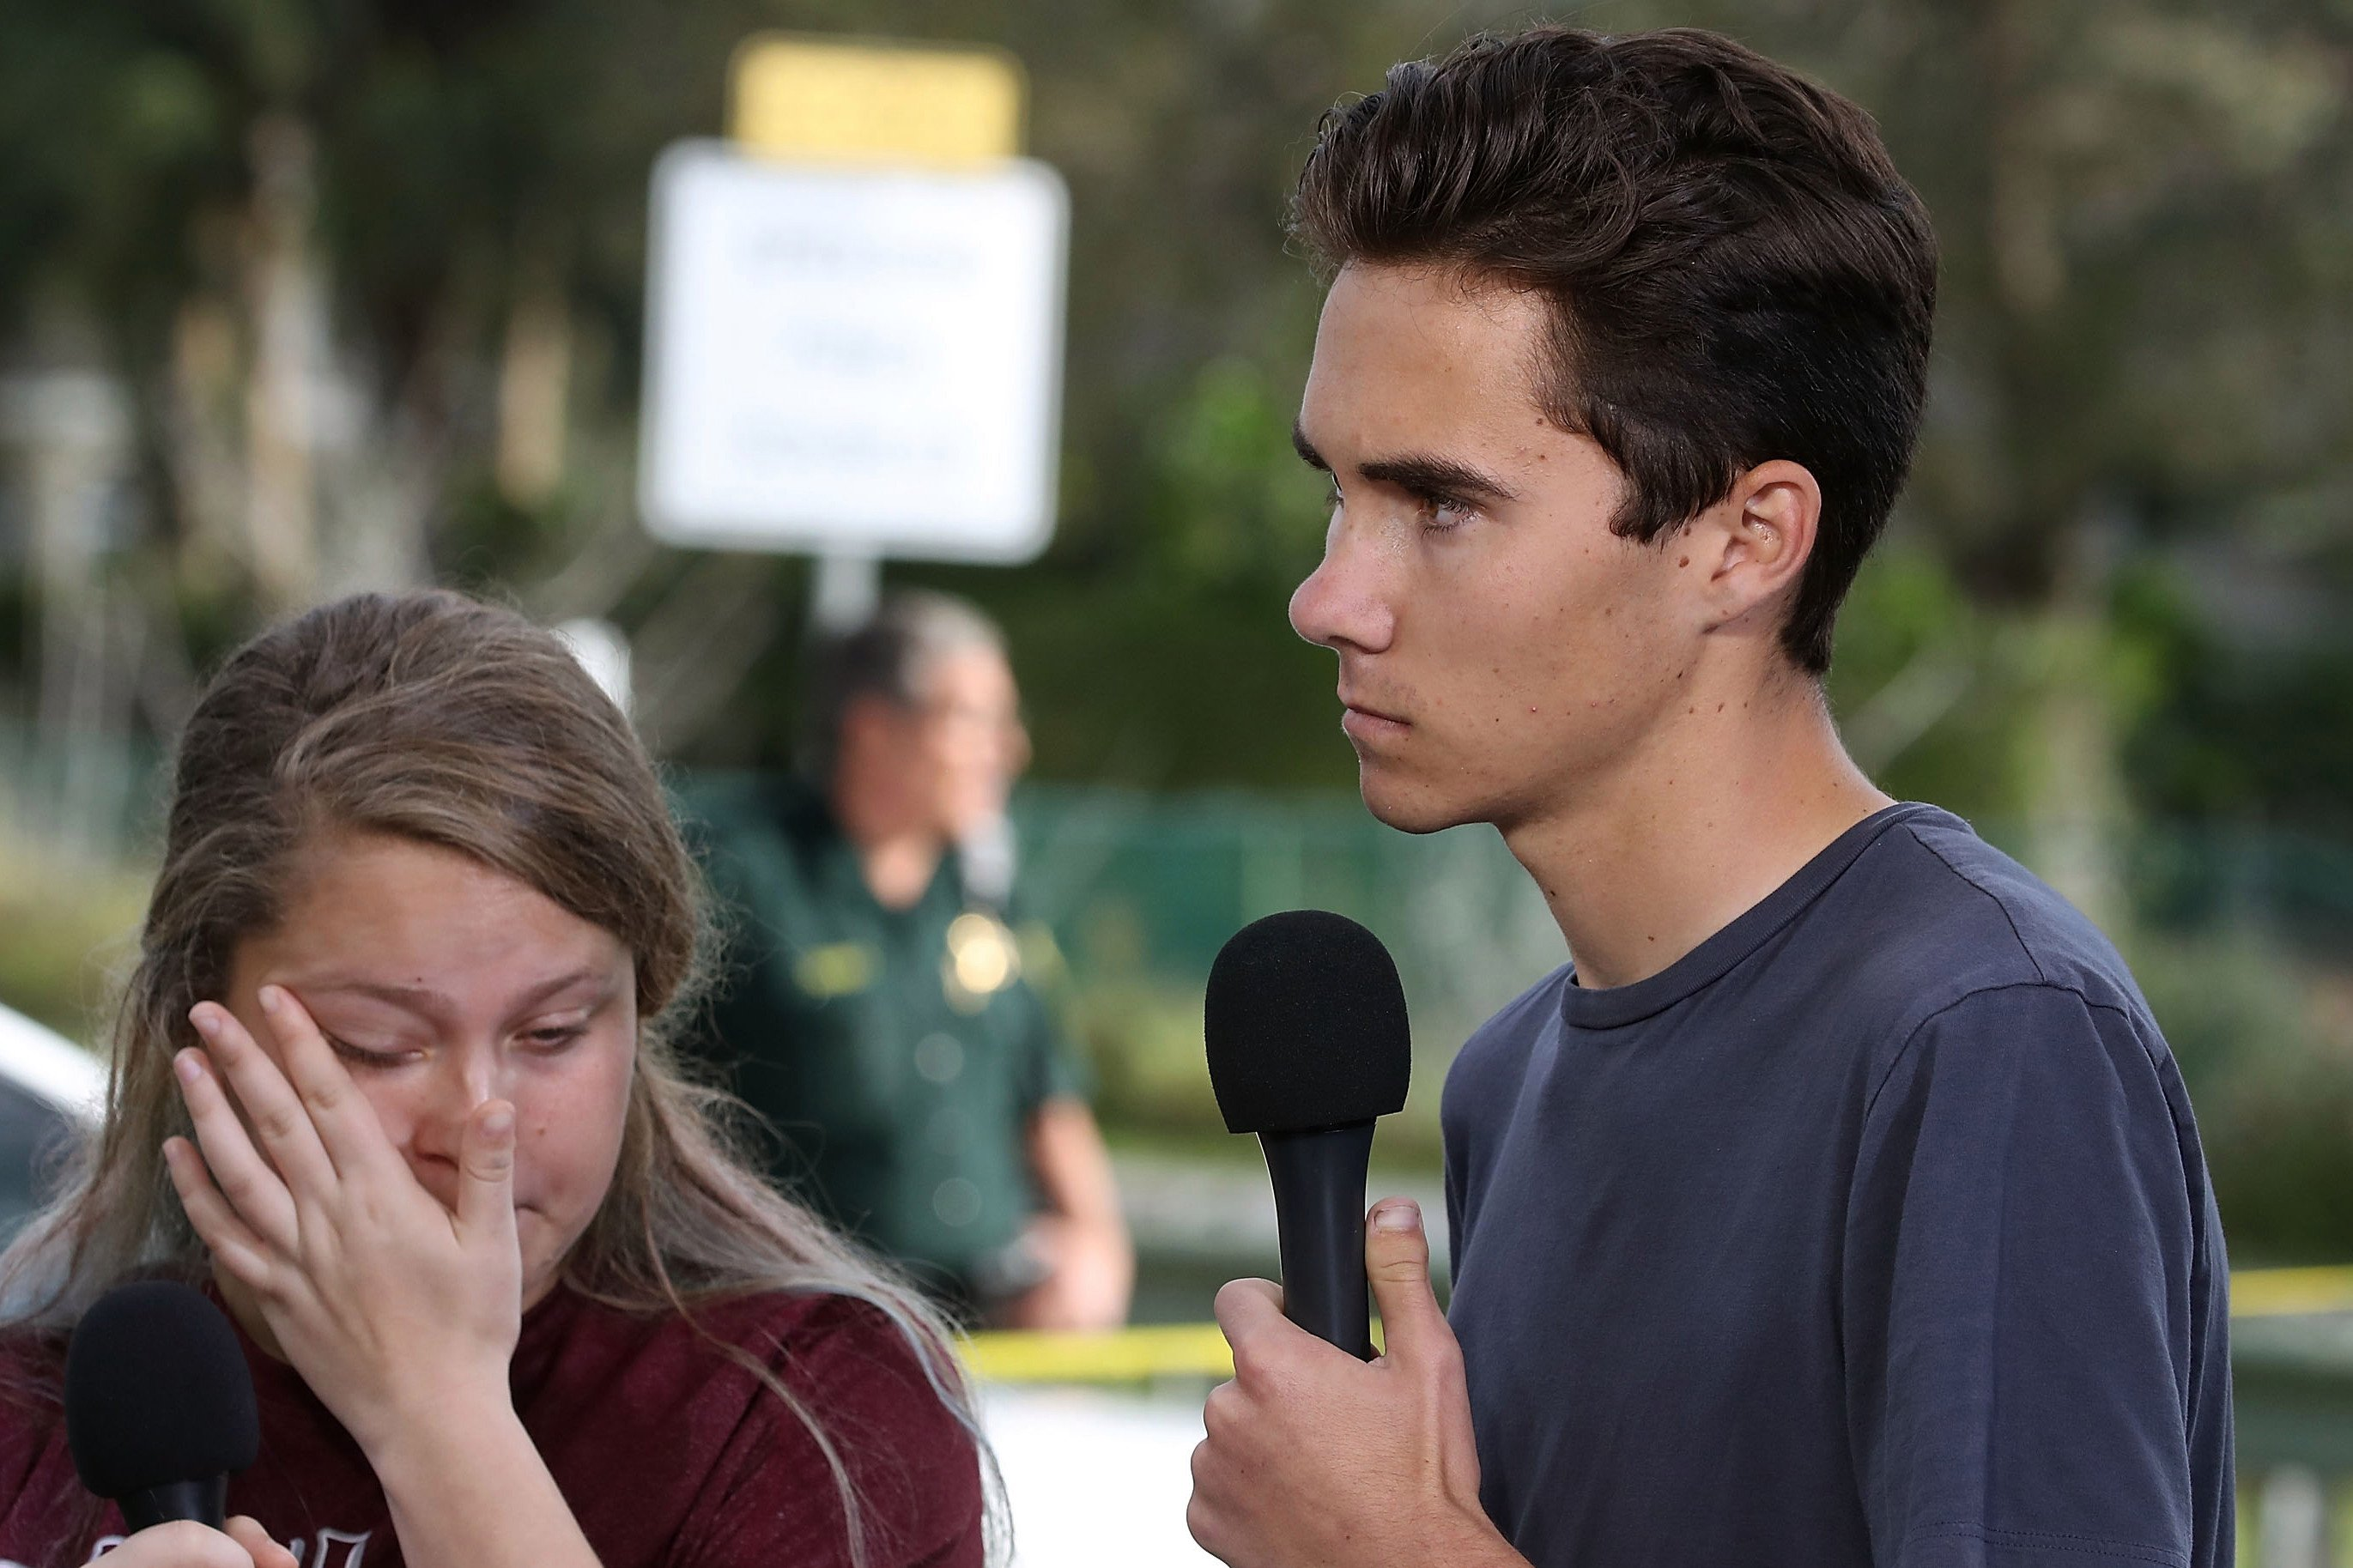 Top video on YouTube accused shooting survivor of being actor